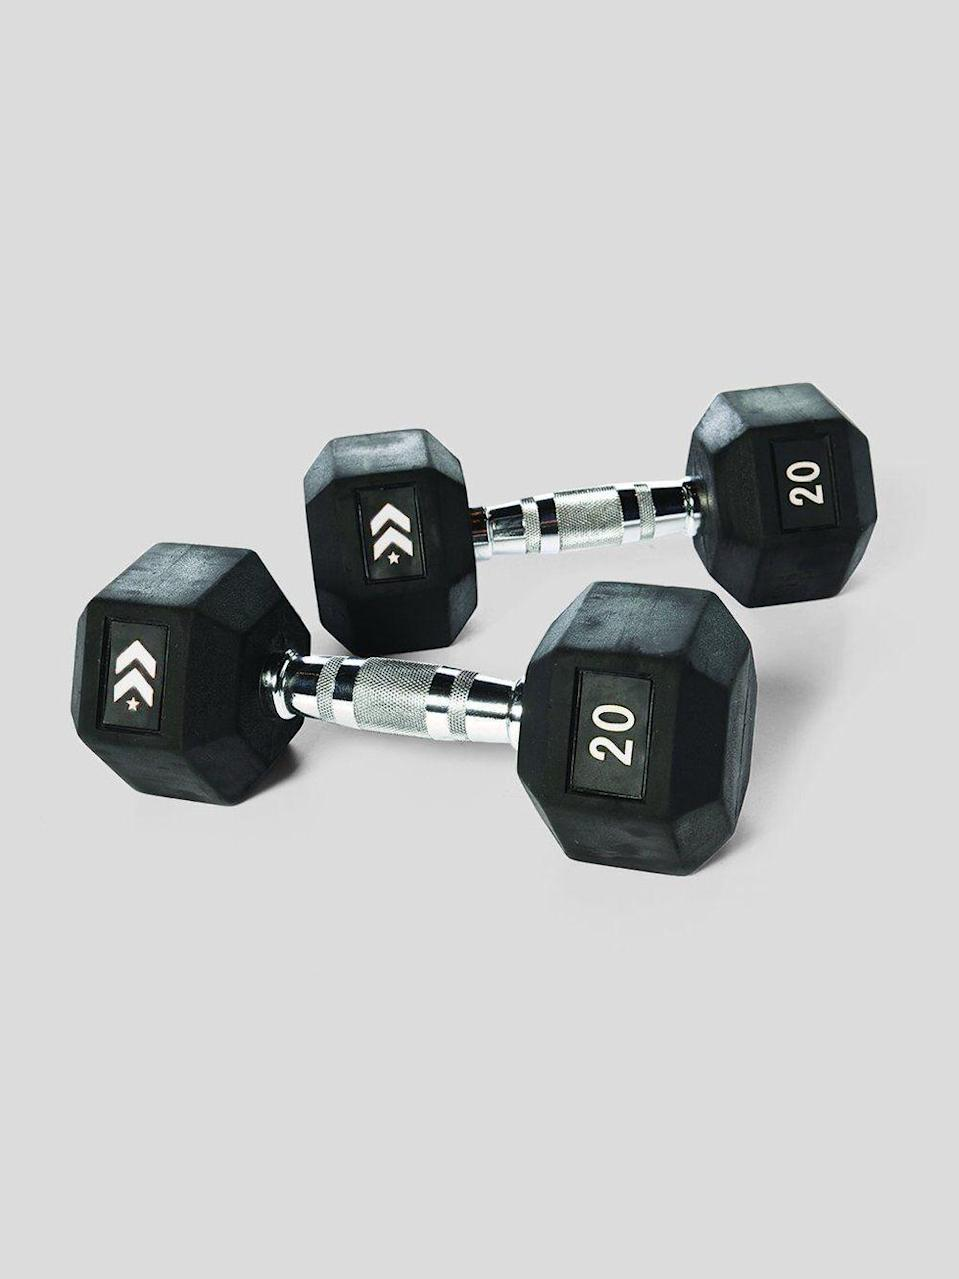 """<p>barrys.com</p><p><strong>$78.00</strong></p><p><a href=""""https://shop.barrys.com/products/barrys-rubber-dumbbell-set?variant=38095320580268"""" rel=""""nofollow noopener"""" target=""""_blank"""" data-ylk=""""slk:Shop Now"""" class=""""link rapid-noclick-resp"""">Shop Now</a></p><p>Gomih is a fan of these weights, which were <strong>designed to be used during HIIT classes</strong> at Barry's. You'll love using them at home—the white numbers make it easy to find the weights you're looking for without having to search through your entire collection. And the handles offer a no-slip grip. </p>"""